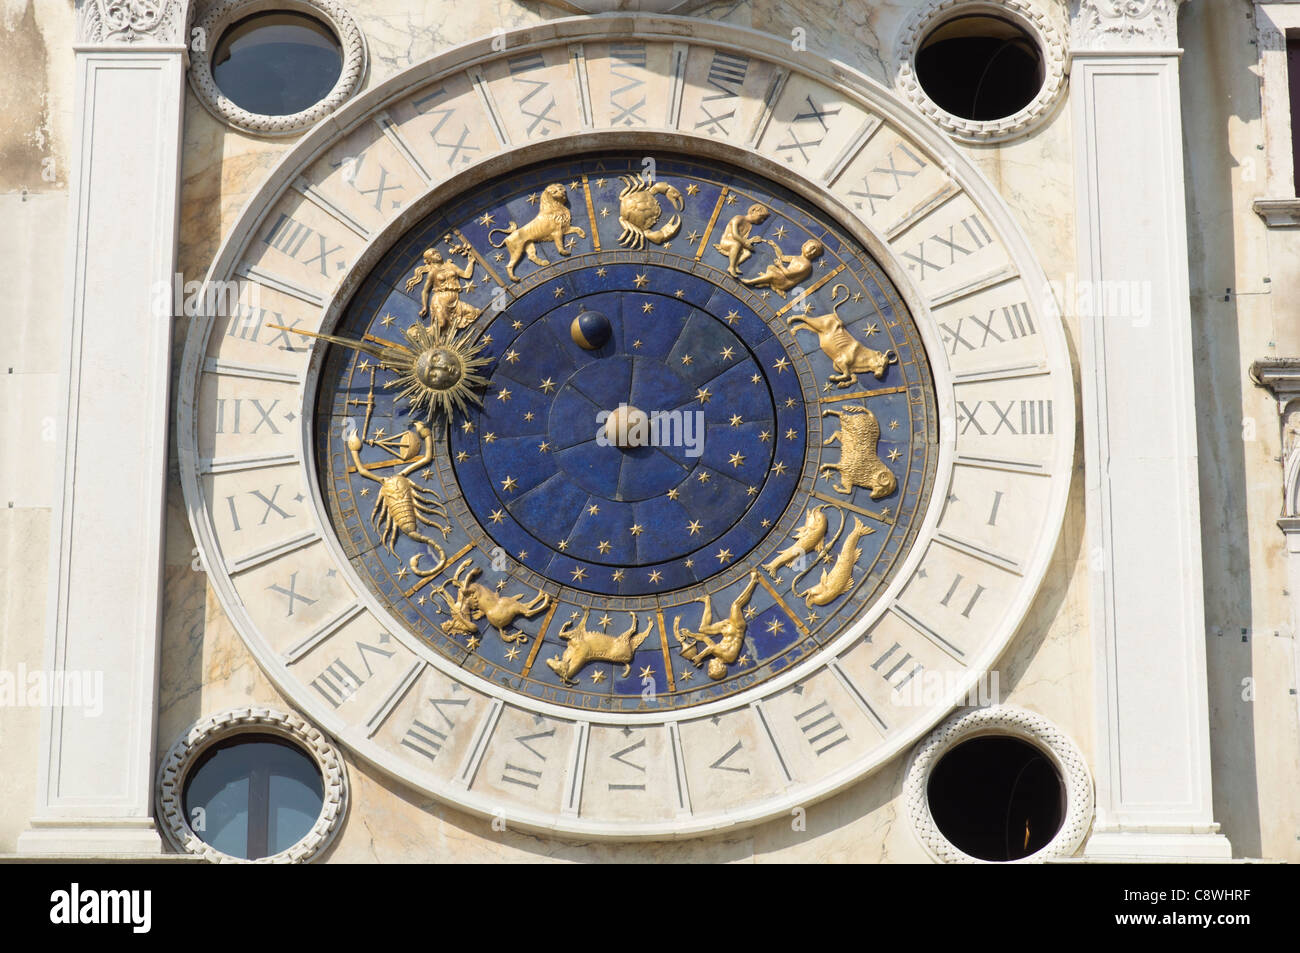 Venice - the astrological clock, San Marco. 24 hour face with star signs. - Stock Image